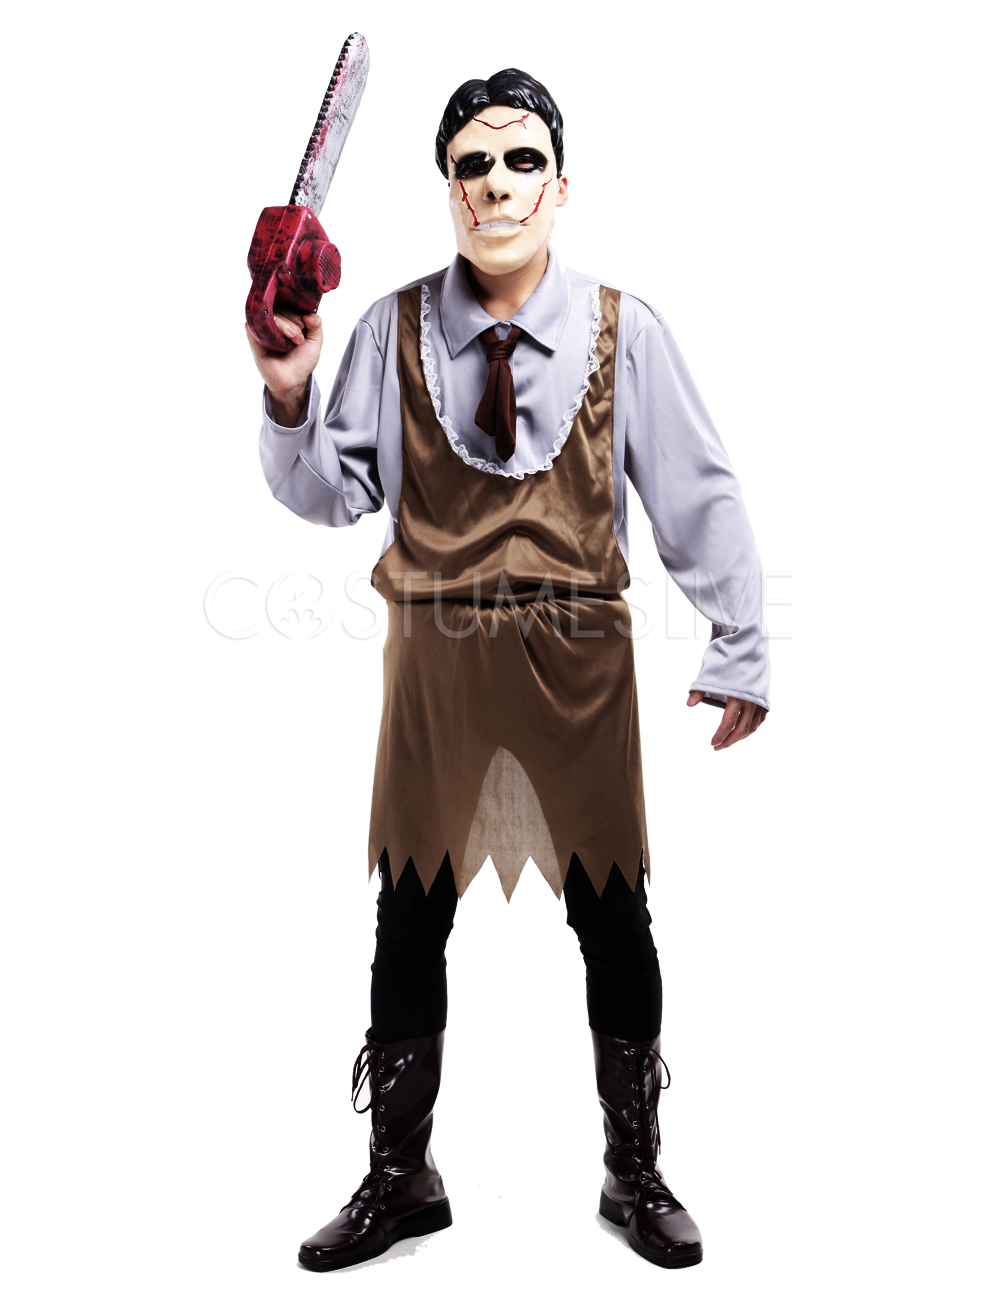 Halloween Zombie Costume Horrible Butcher Costume Cosplay - Costumeslive.com by Milanoo  sc 1 st  CostumesLive & Halloween Zombie Costume Horrible Butcher Costume Cosplay ...